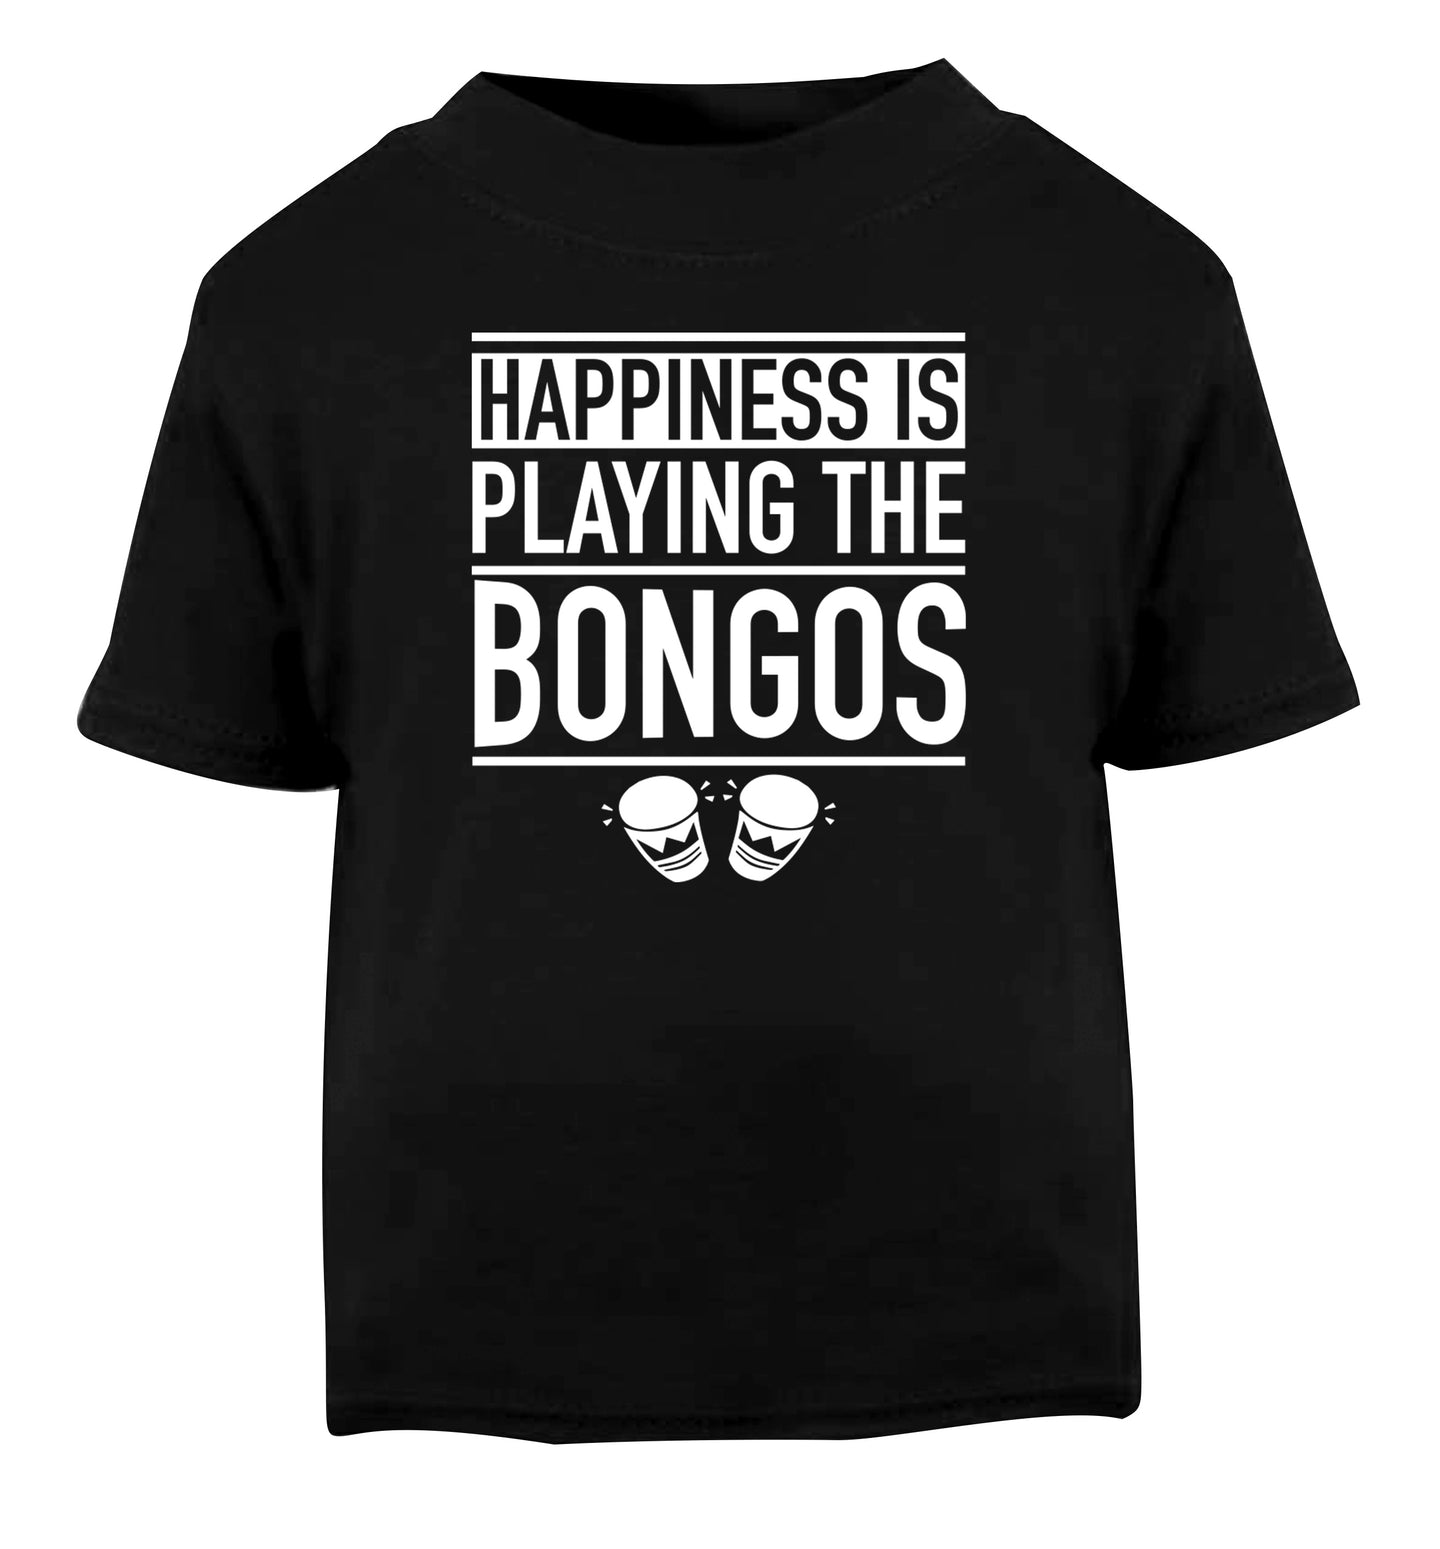 Happiness is playing the bongos Black Baby Toddler Tshirt 2 years